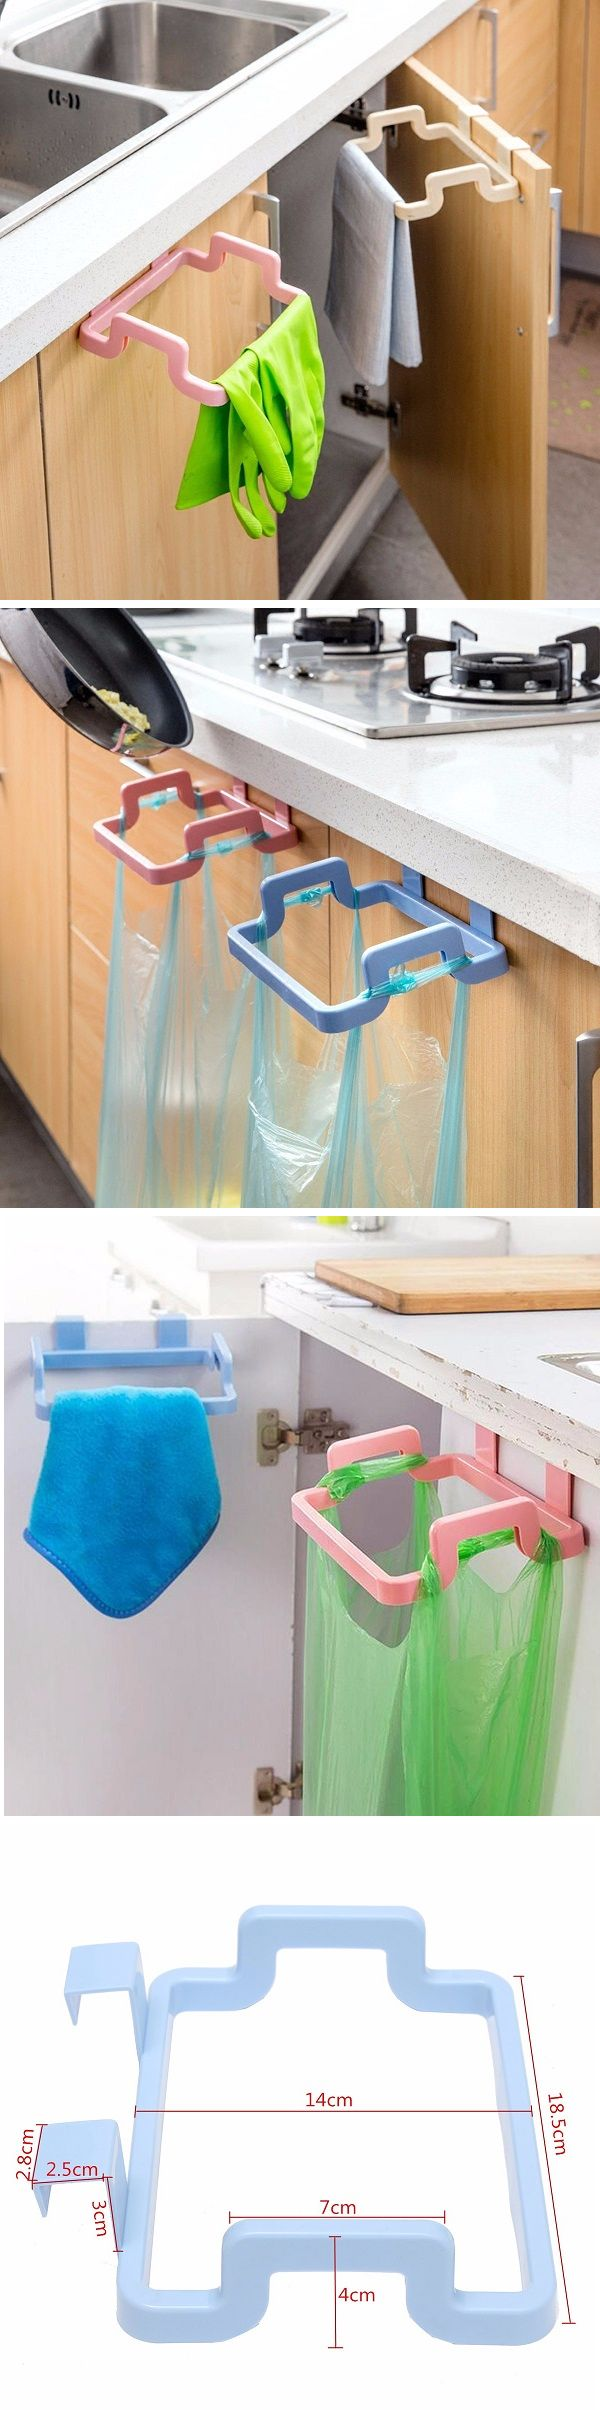 US$3.05 Kitchen Cabinet Hanging Rubbish Bag Holder Garbage Storage Rack Cupboard Hanger